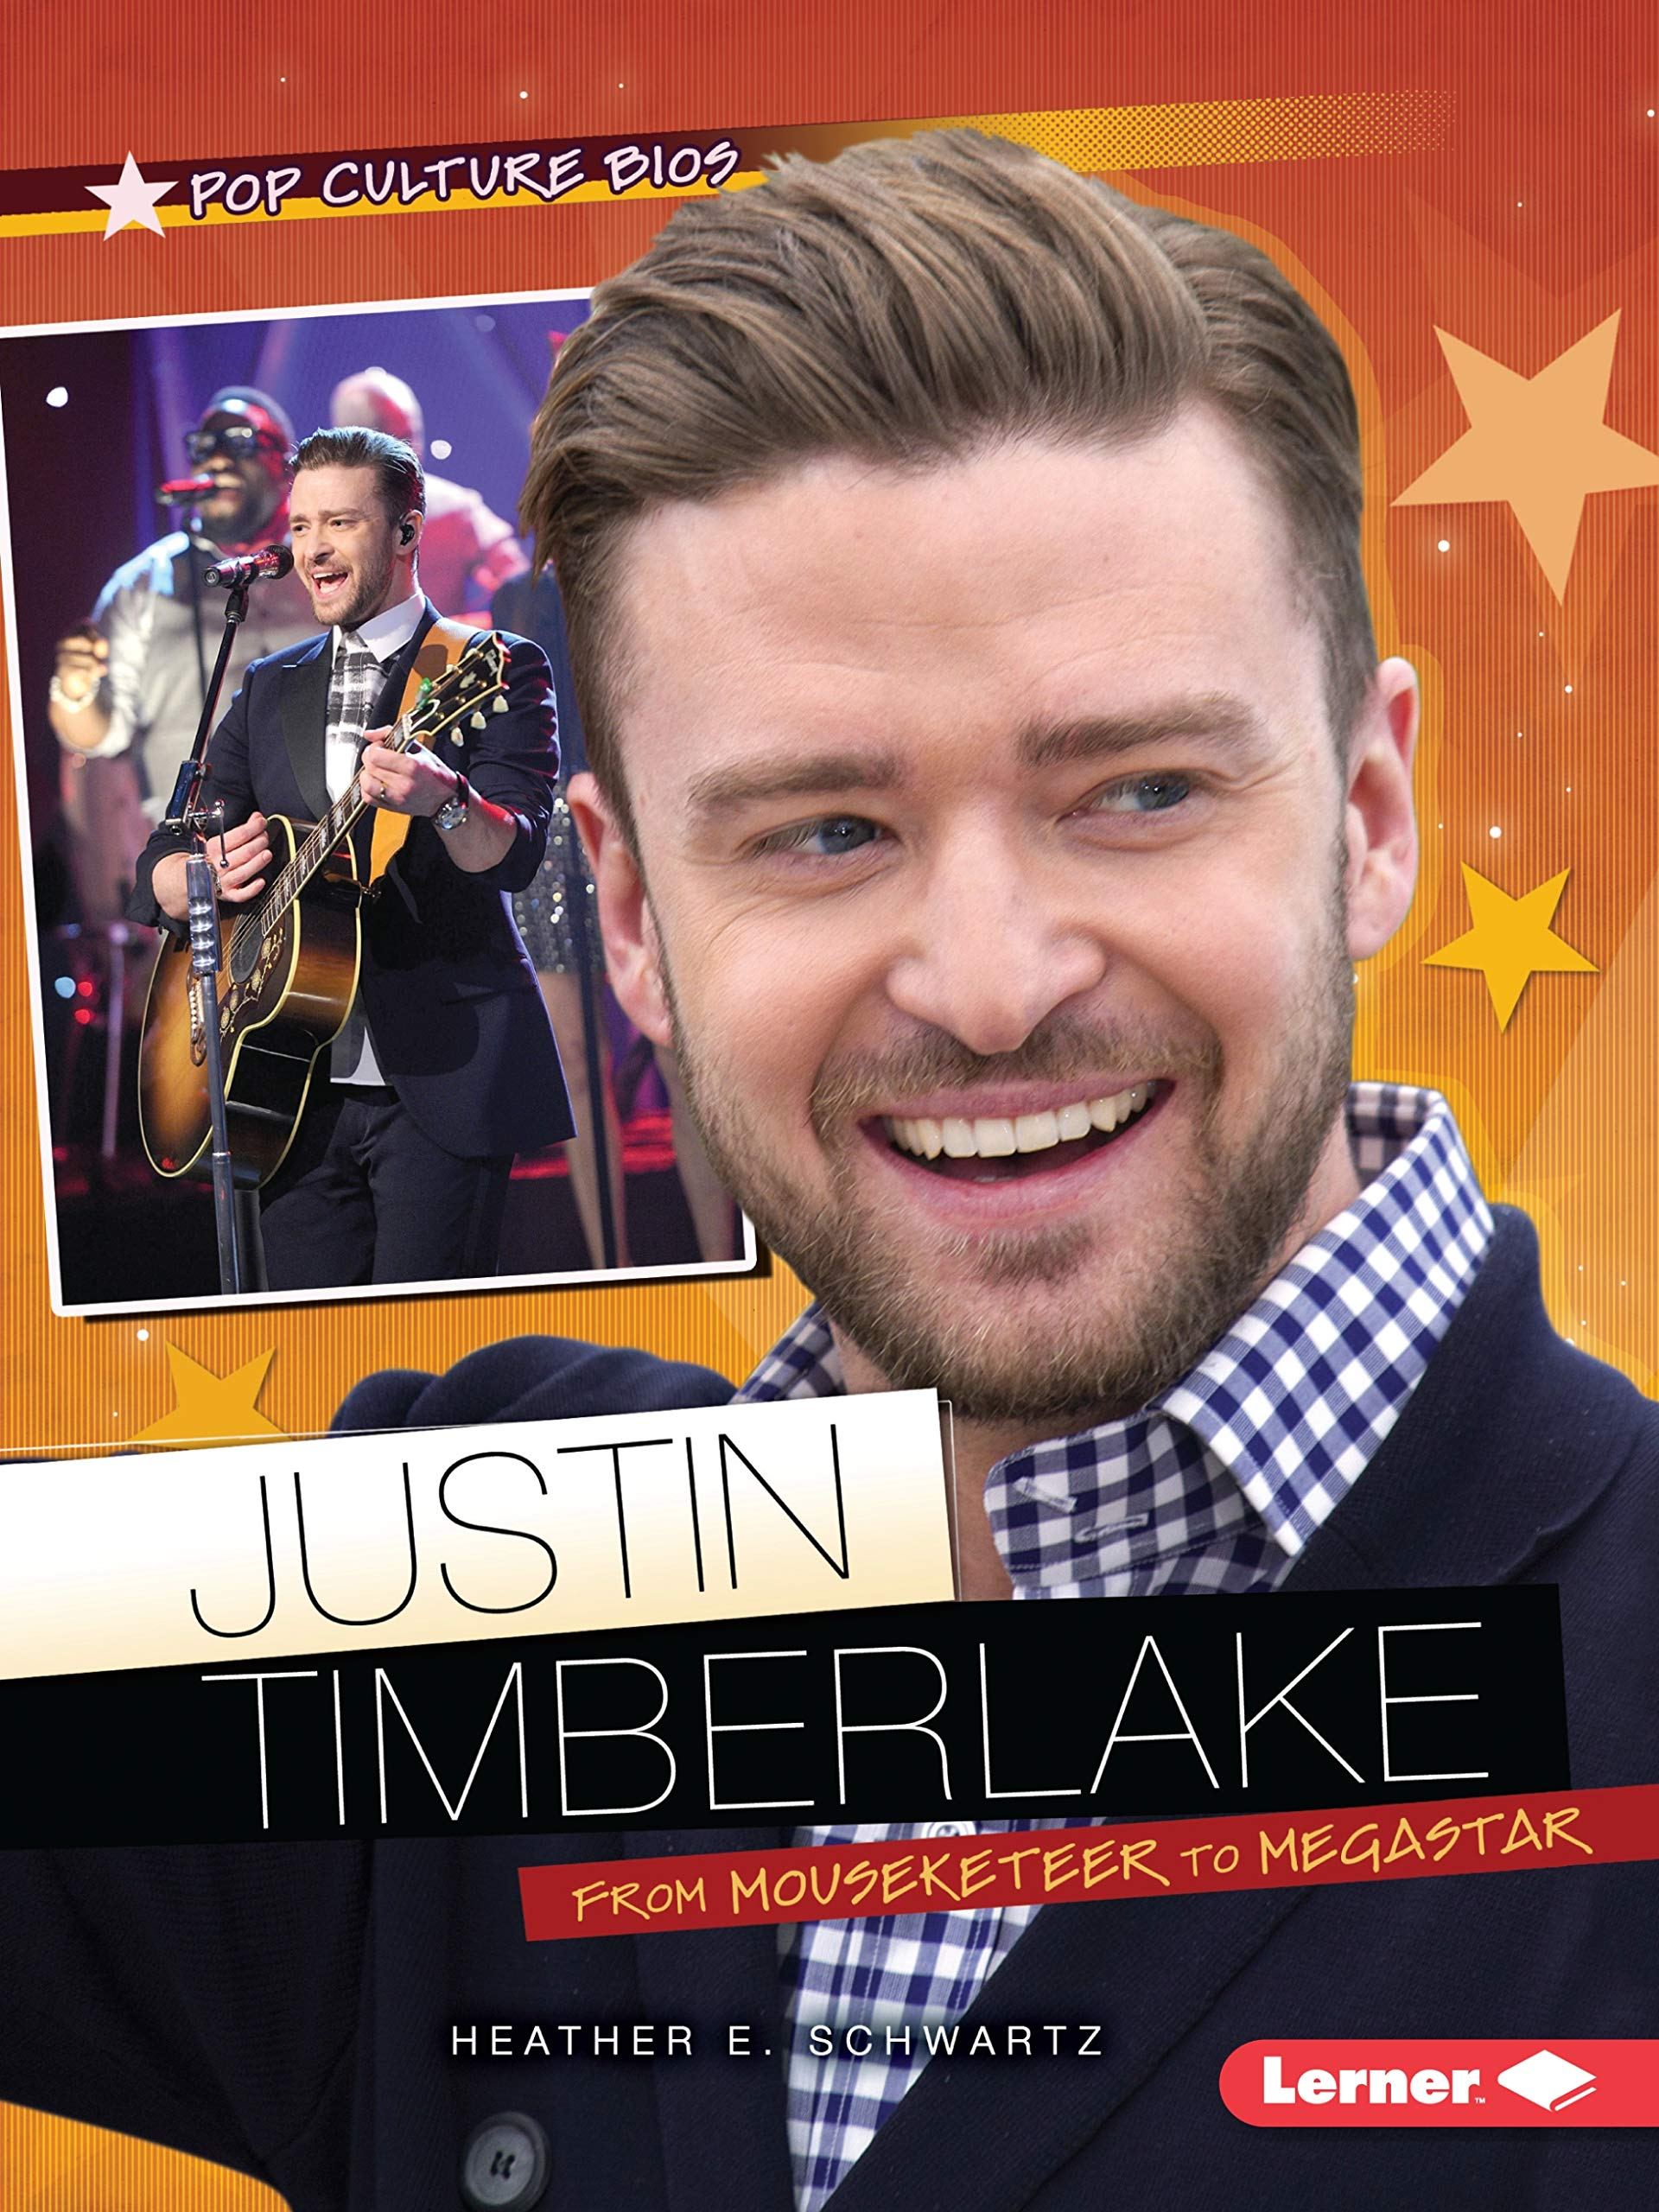 Justin Timberlake: From Mouseketeer to Megastar (Pop Culture Bios) pdf